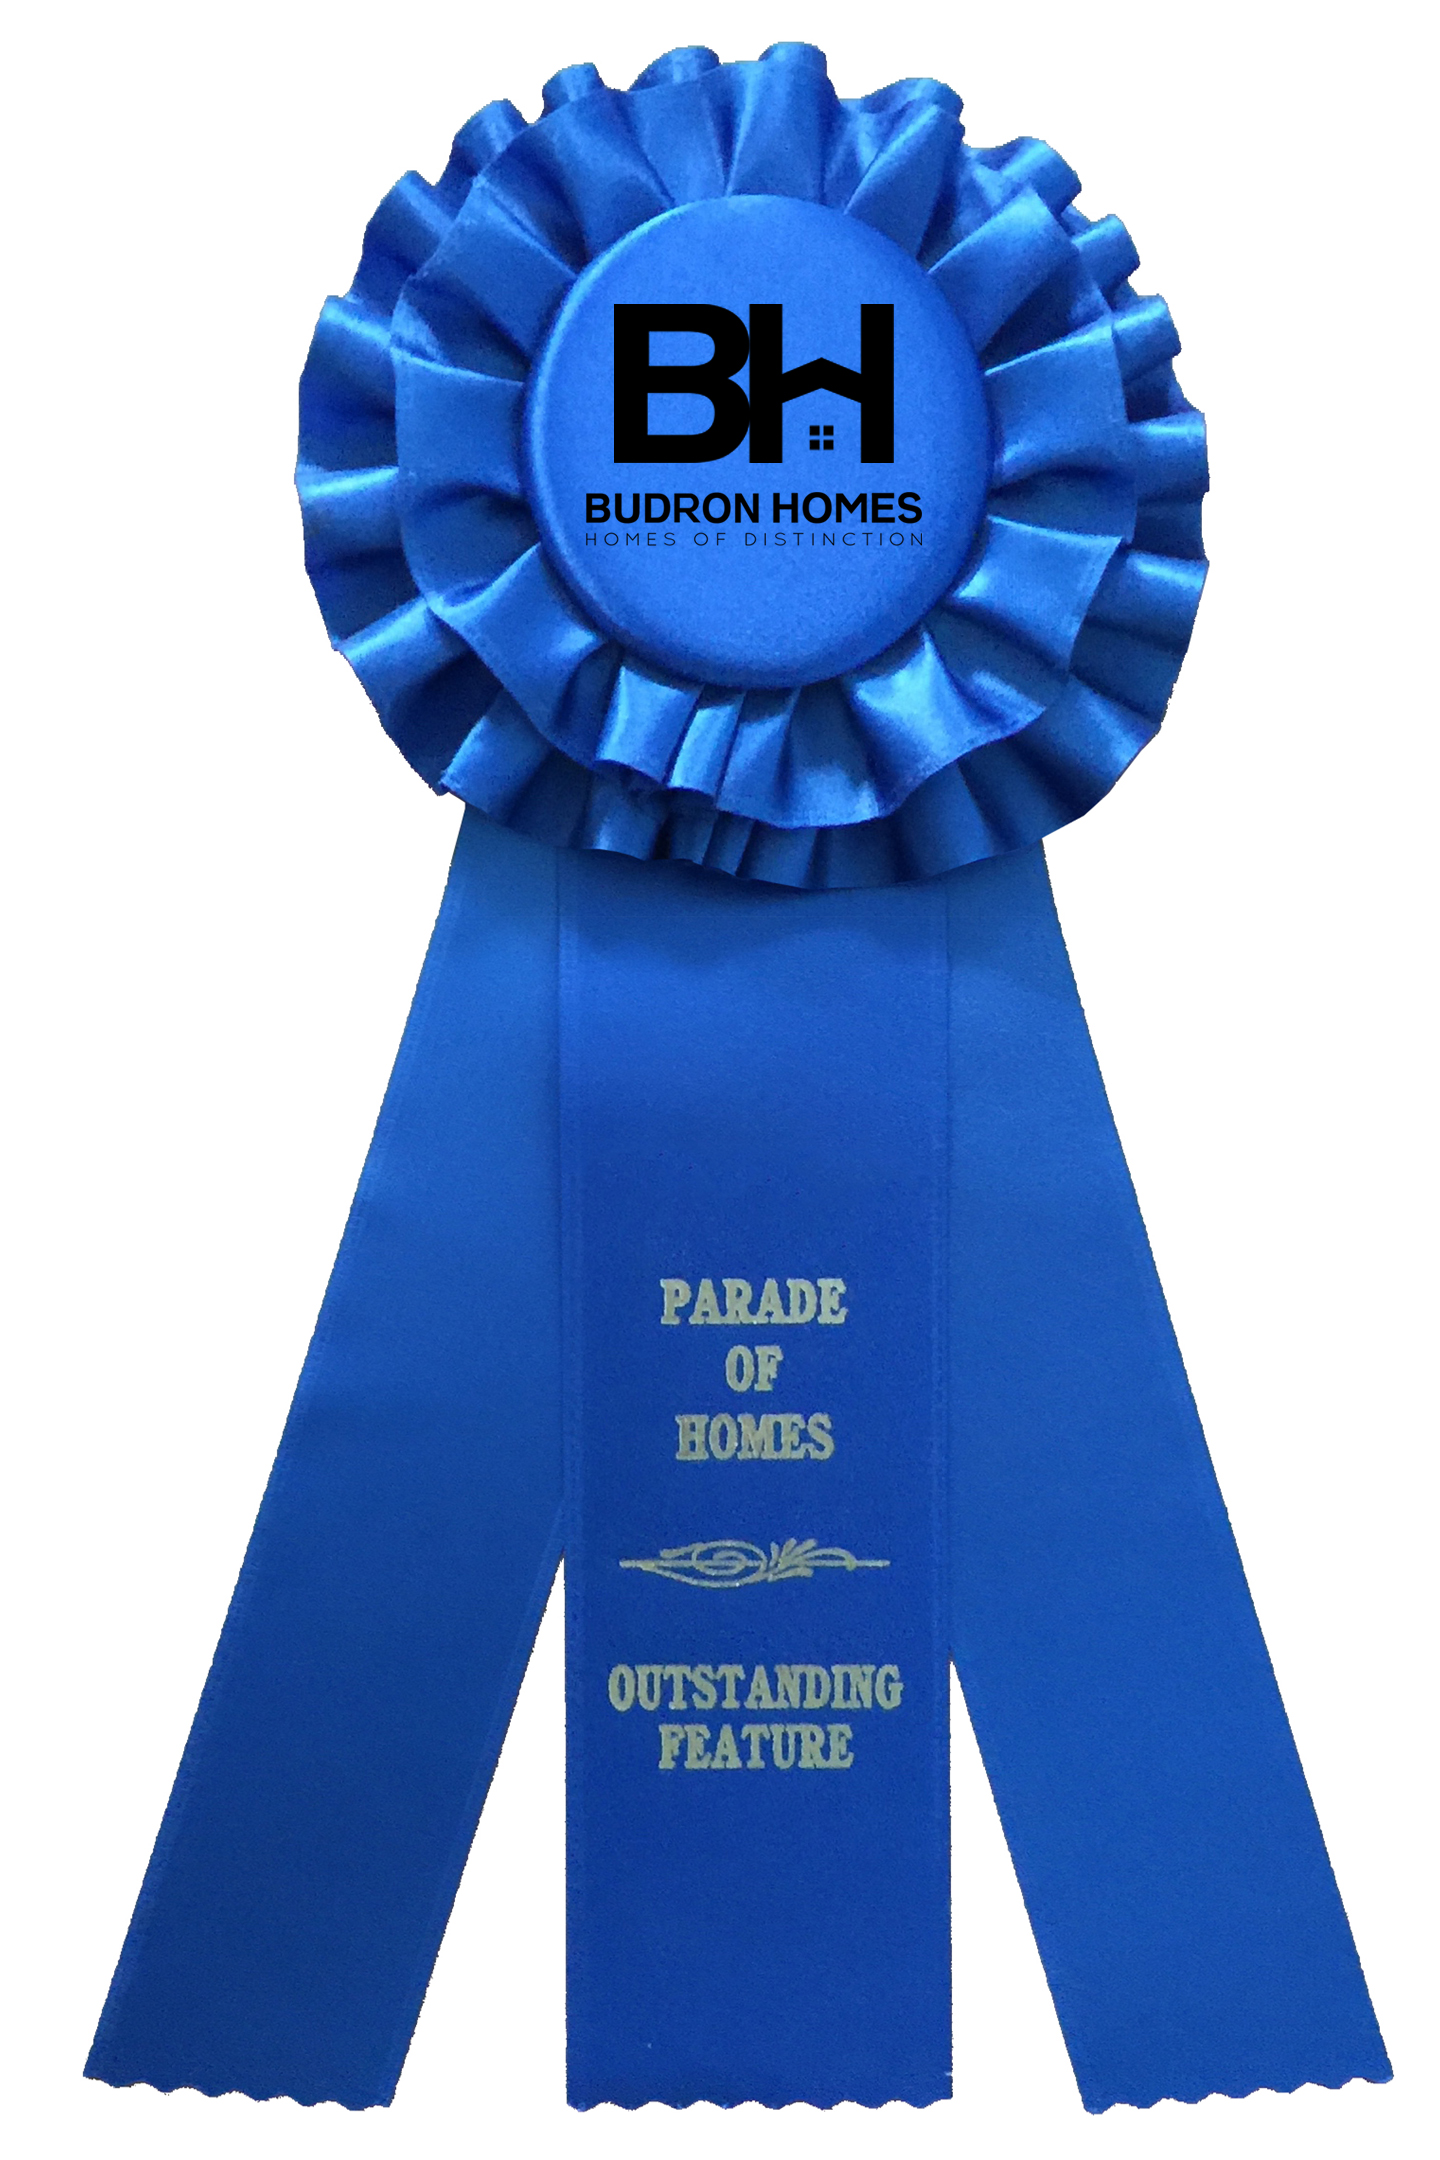 Image of Parade of Homes award